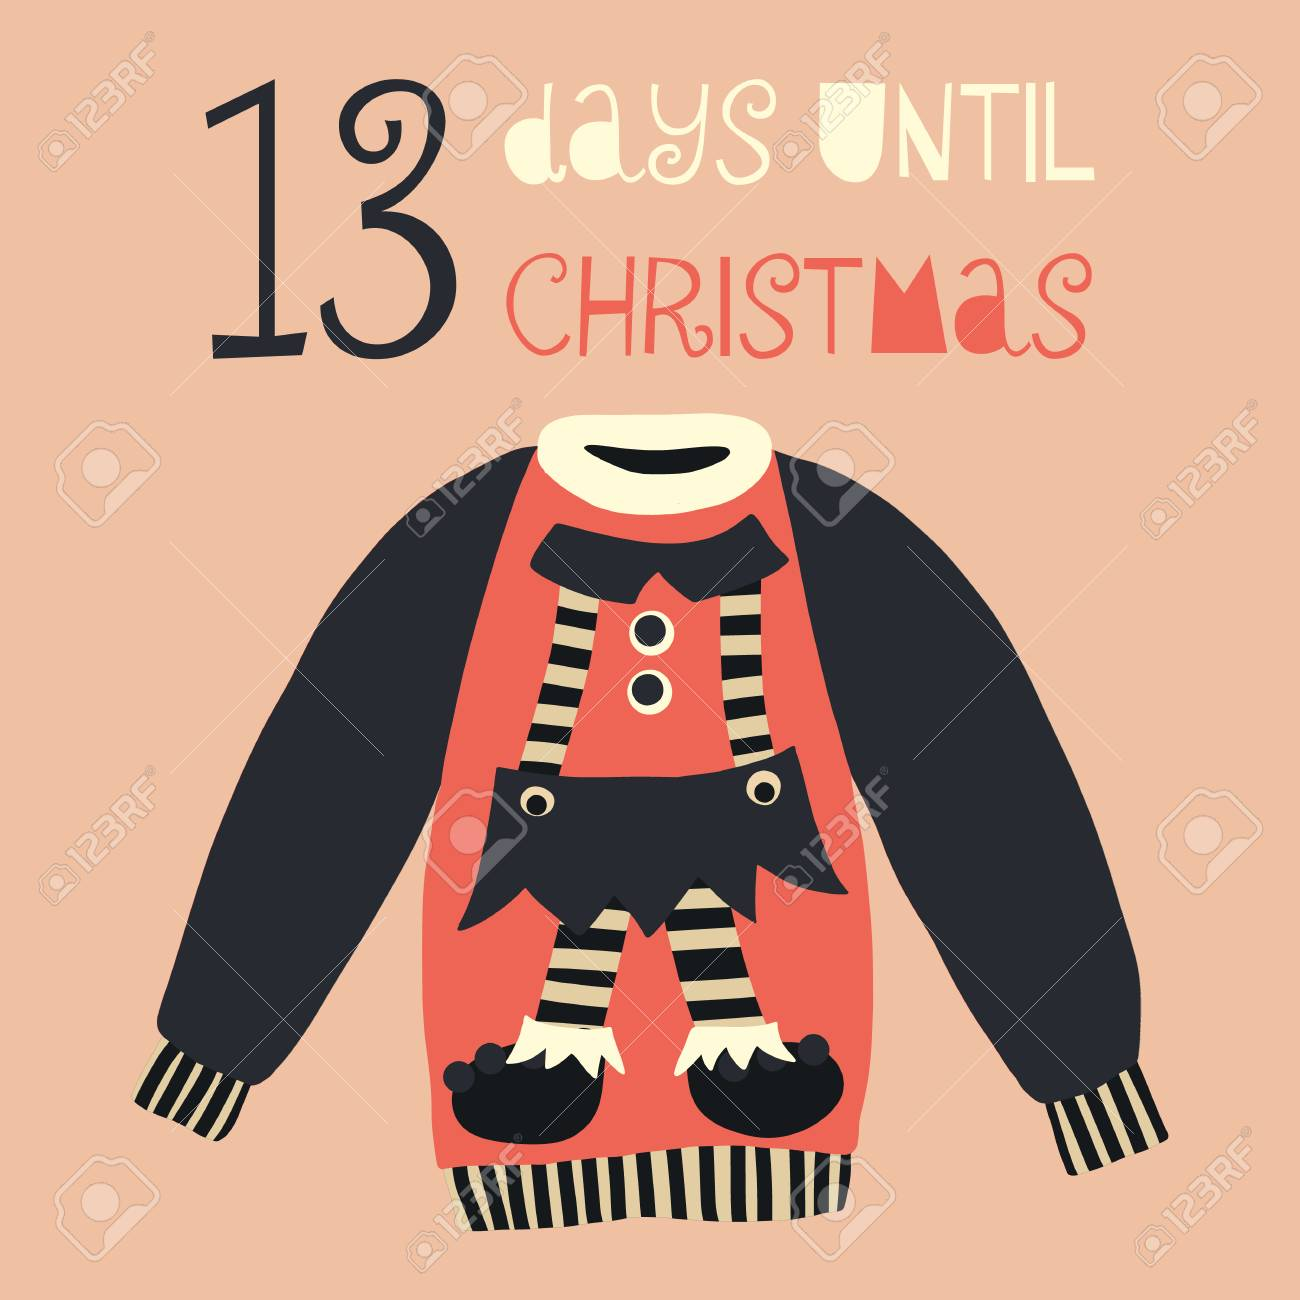 How Many Days Until Christmas Countdown.Stock Illustration